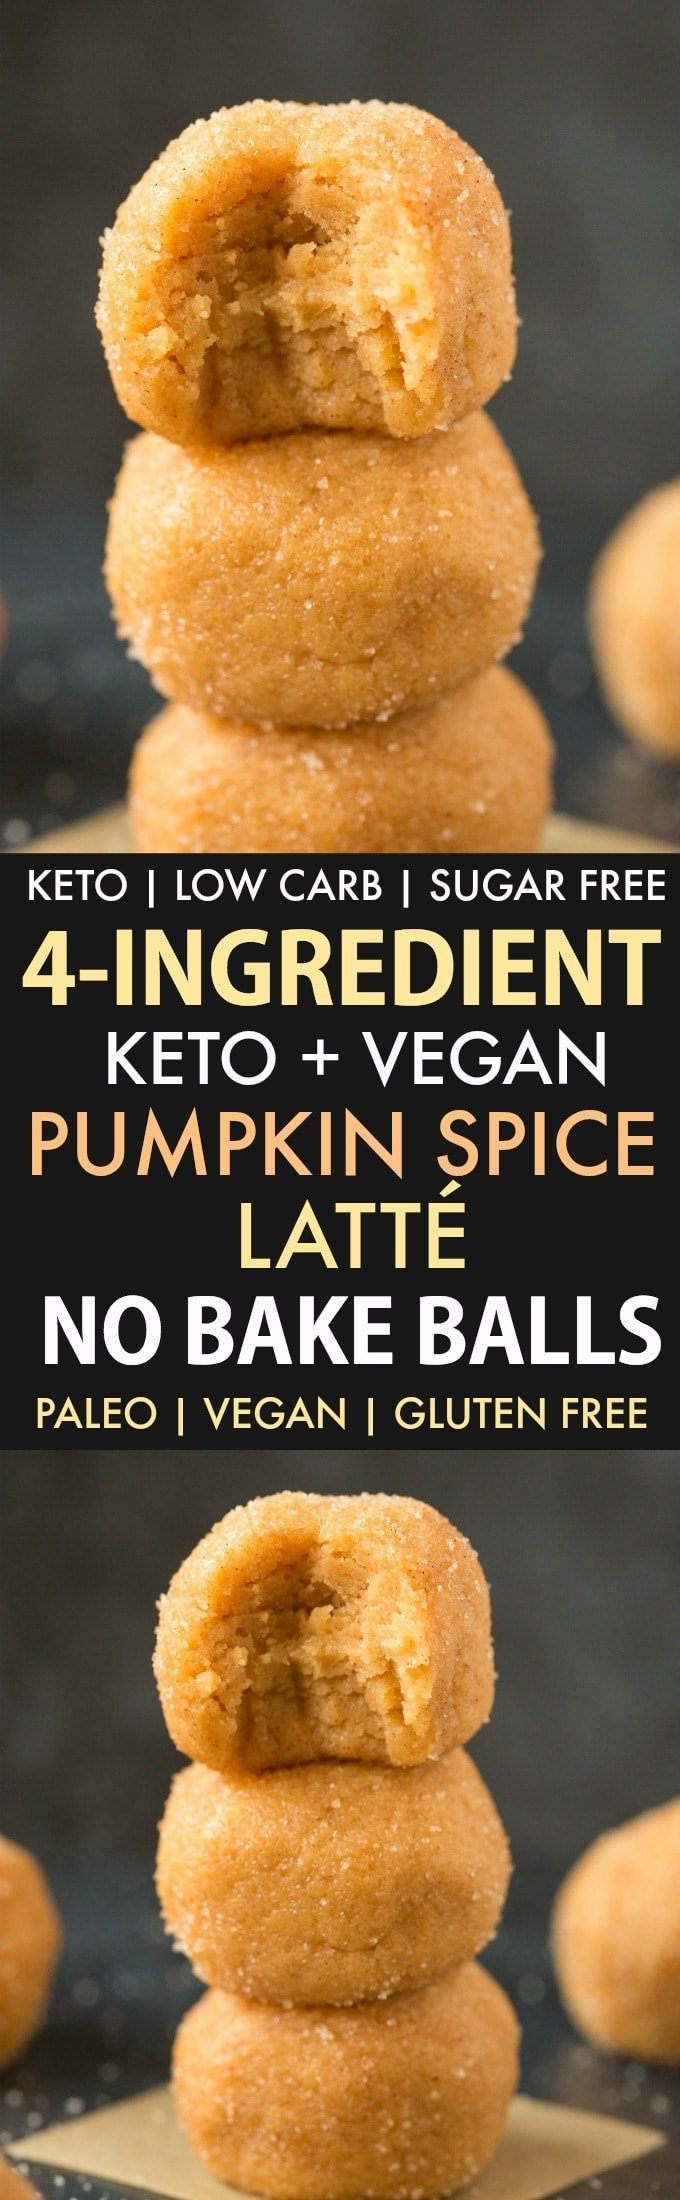 No Bake Pumpkin Spice Latte Energy Bites (Paleo, Vegan, Keto, Low Carb, Sugar Free)- An easy 4-ingredient recipe for pumpkin spice latte energy bites which are soft, chewy and protein-packed! A delicious pumpkin snack which tastes like a Pumpkin Spice Latte! #pumpkinspicelatte #ketosnack #energyballs #fatbombs | Recipe on thebigmansworld.com